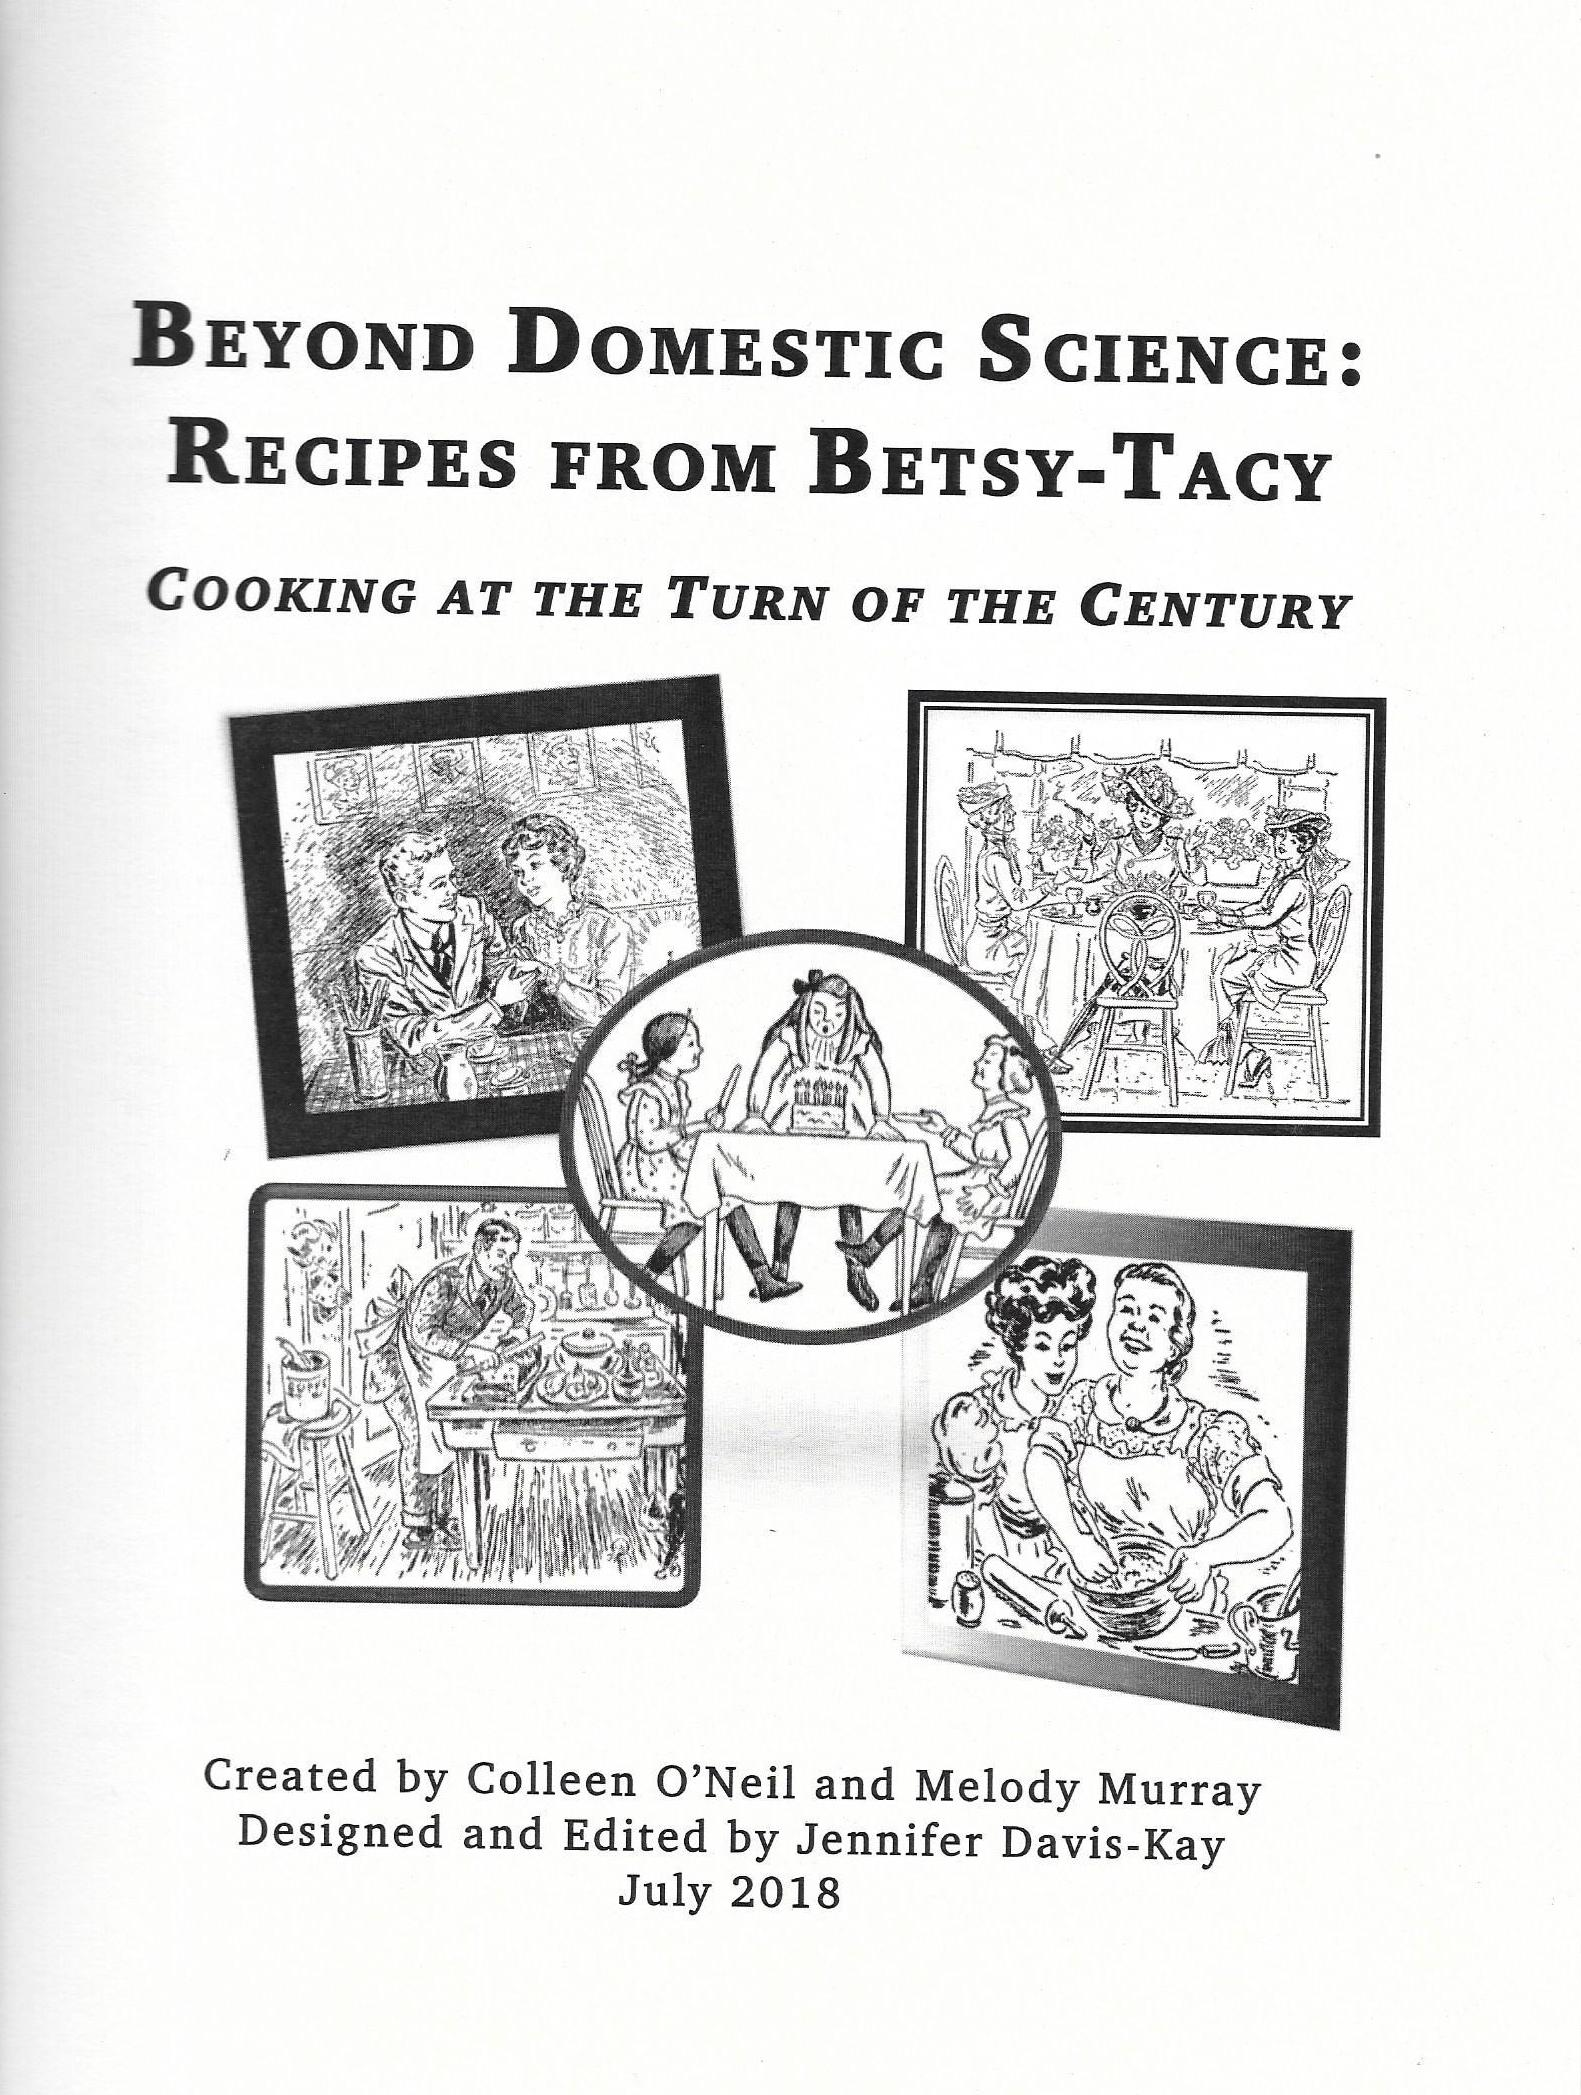 Beyond Domestic Science cookbook